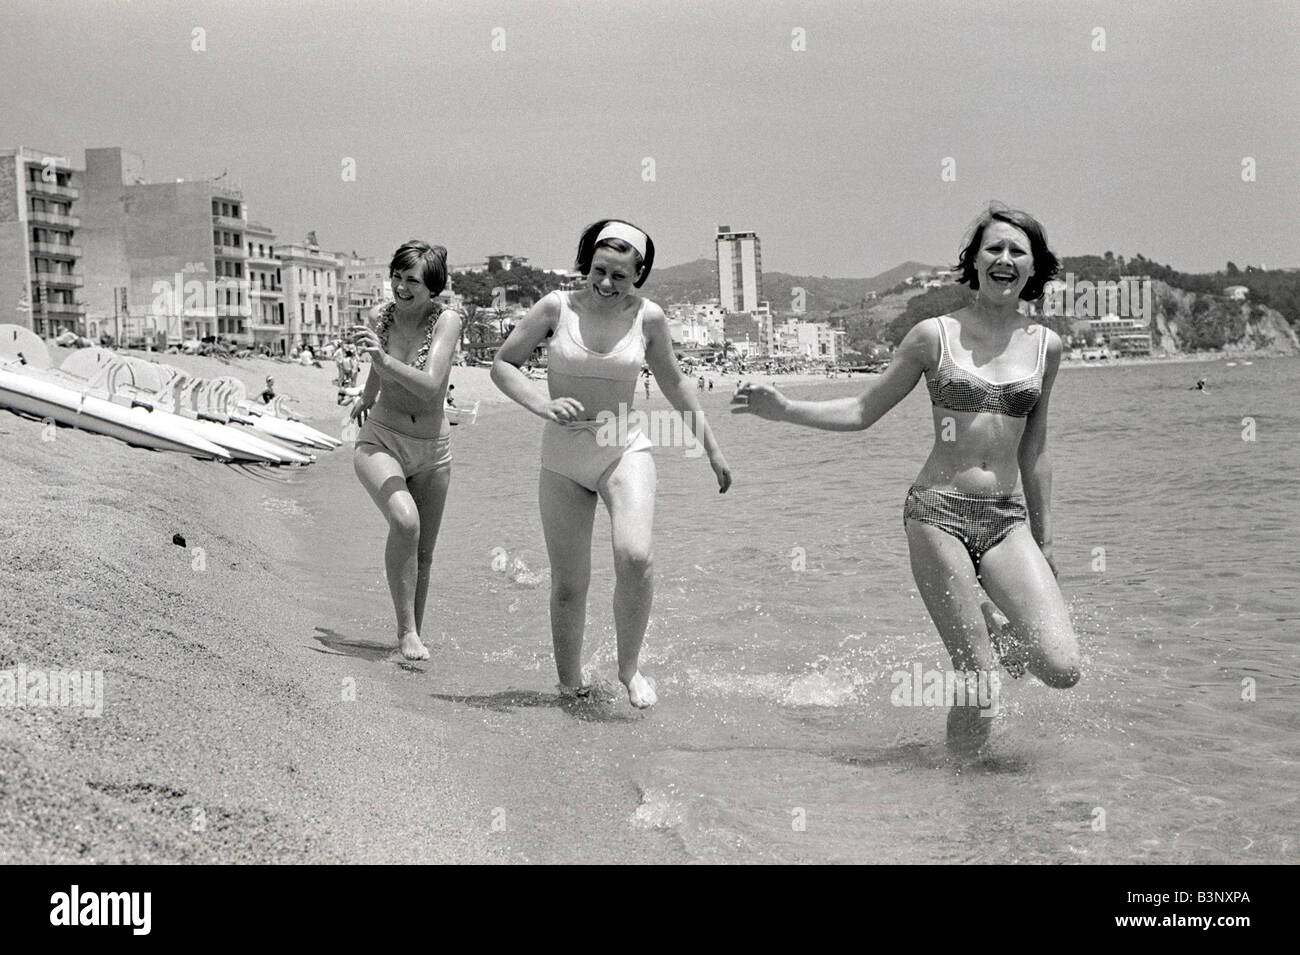 British People Abroard Holidaymakers June 1965 Local Caption friendshipimages - Stock Image